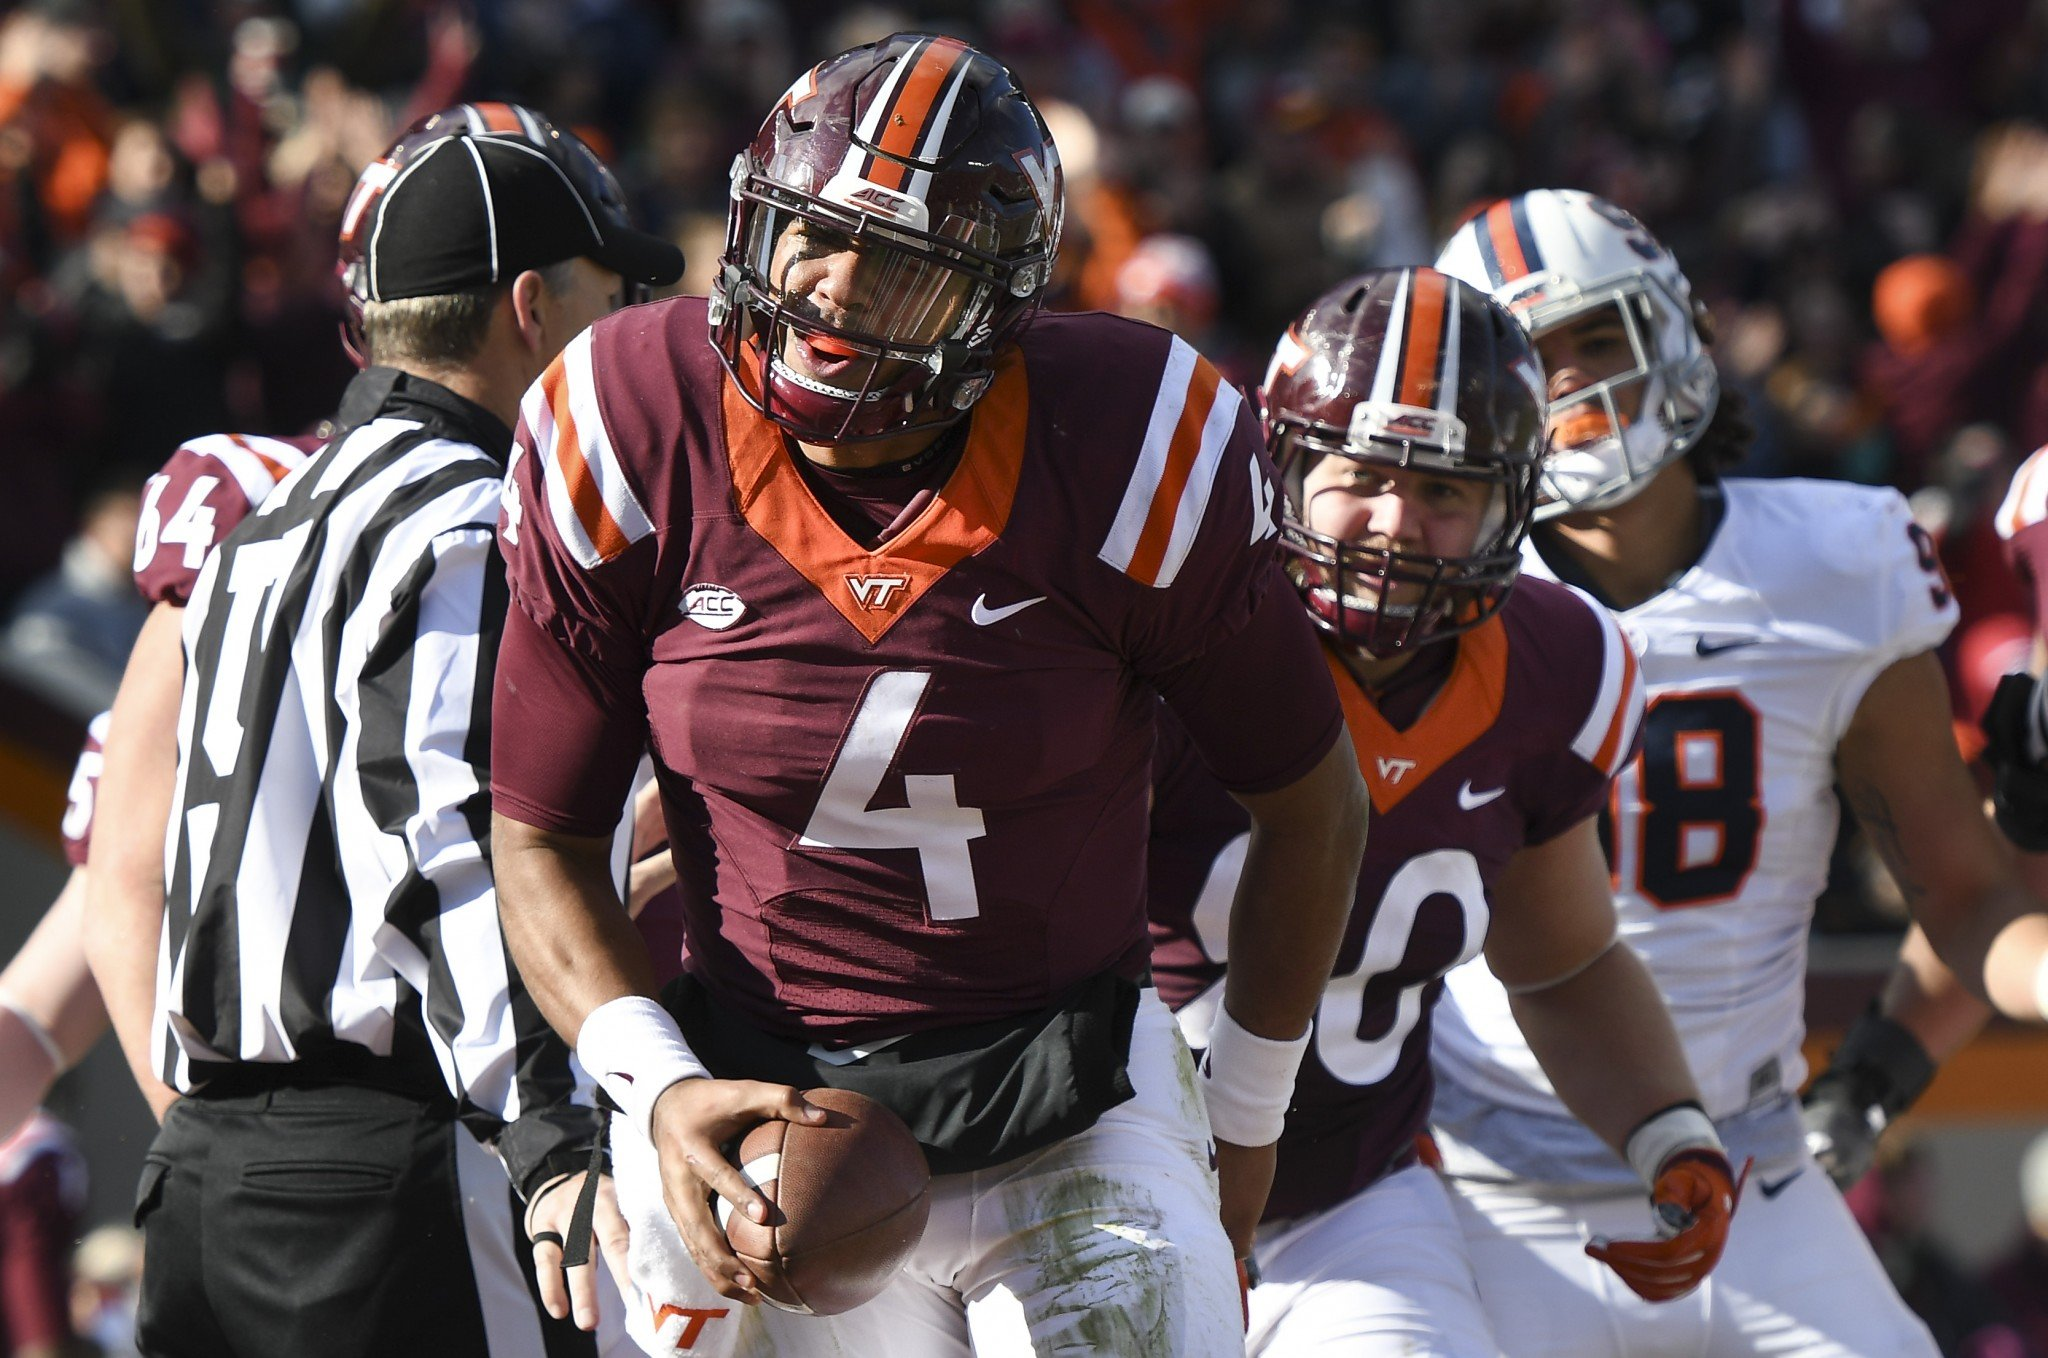 Virginia Tech quarterback Jerod Evans has 37 total TDs this year. (Getty)